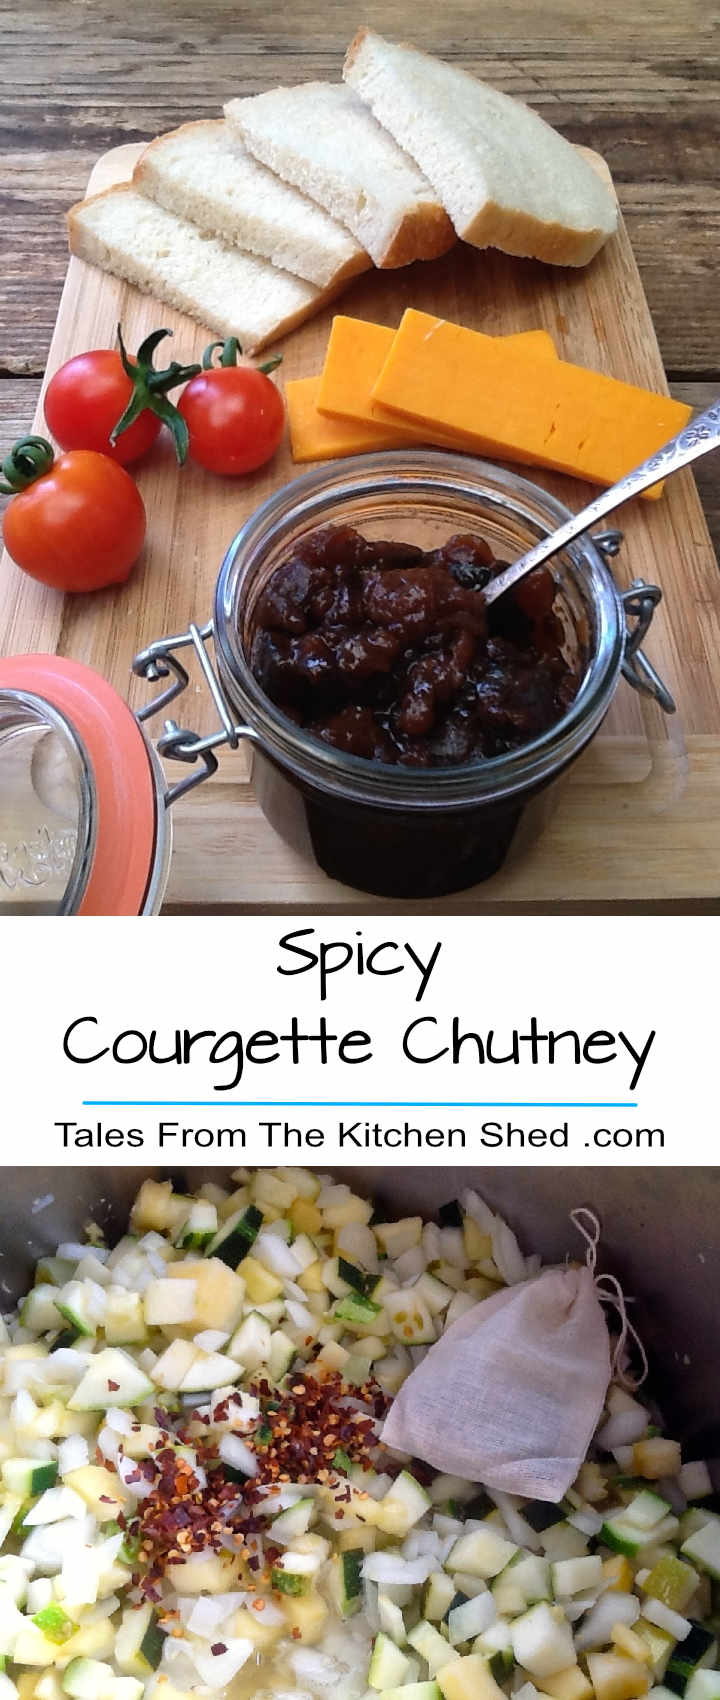 Spicy Courgette Chutney is delicious with cheese, cold meats & perfect for a cheese & pickle sandwich. Spiced with coriander, ginger, mustard seeds and a touch of chilli. Instructions are included for the slow cooker and conventional cooking.